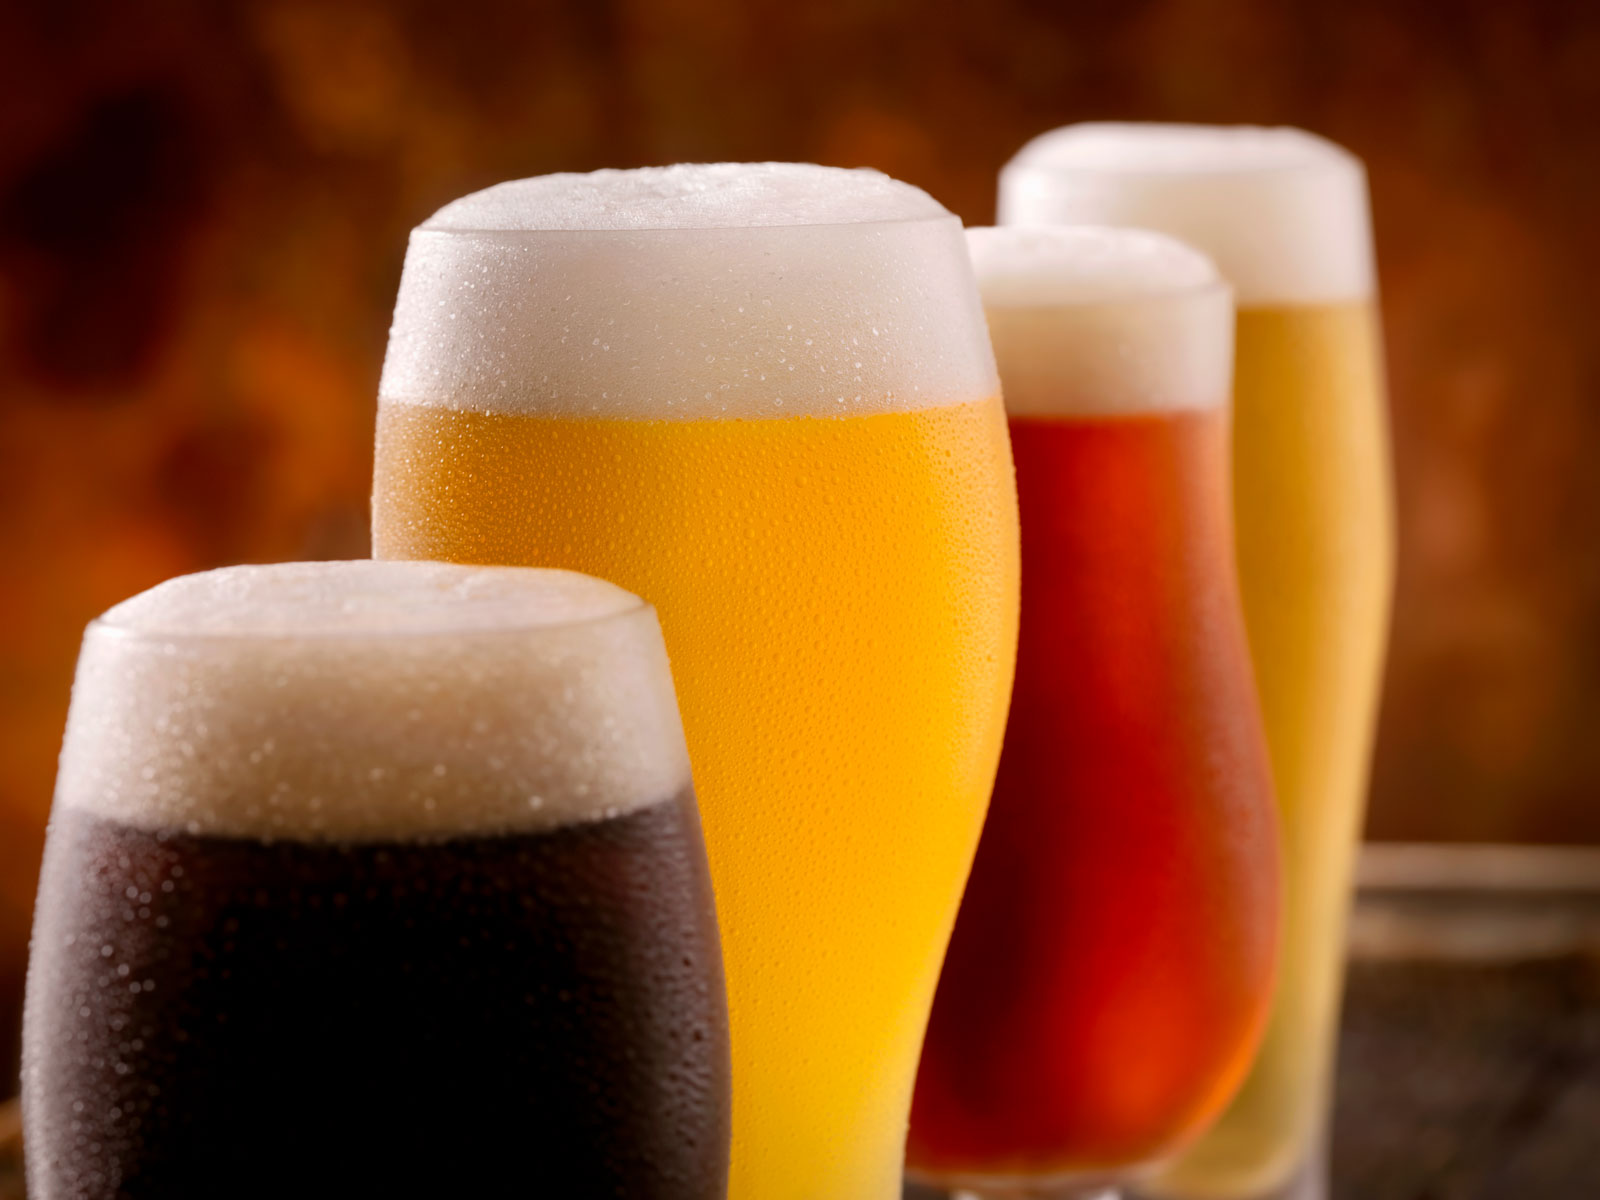 Cicerone Certification Program Offers Course on American Beer Styles